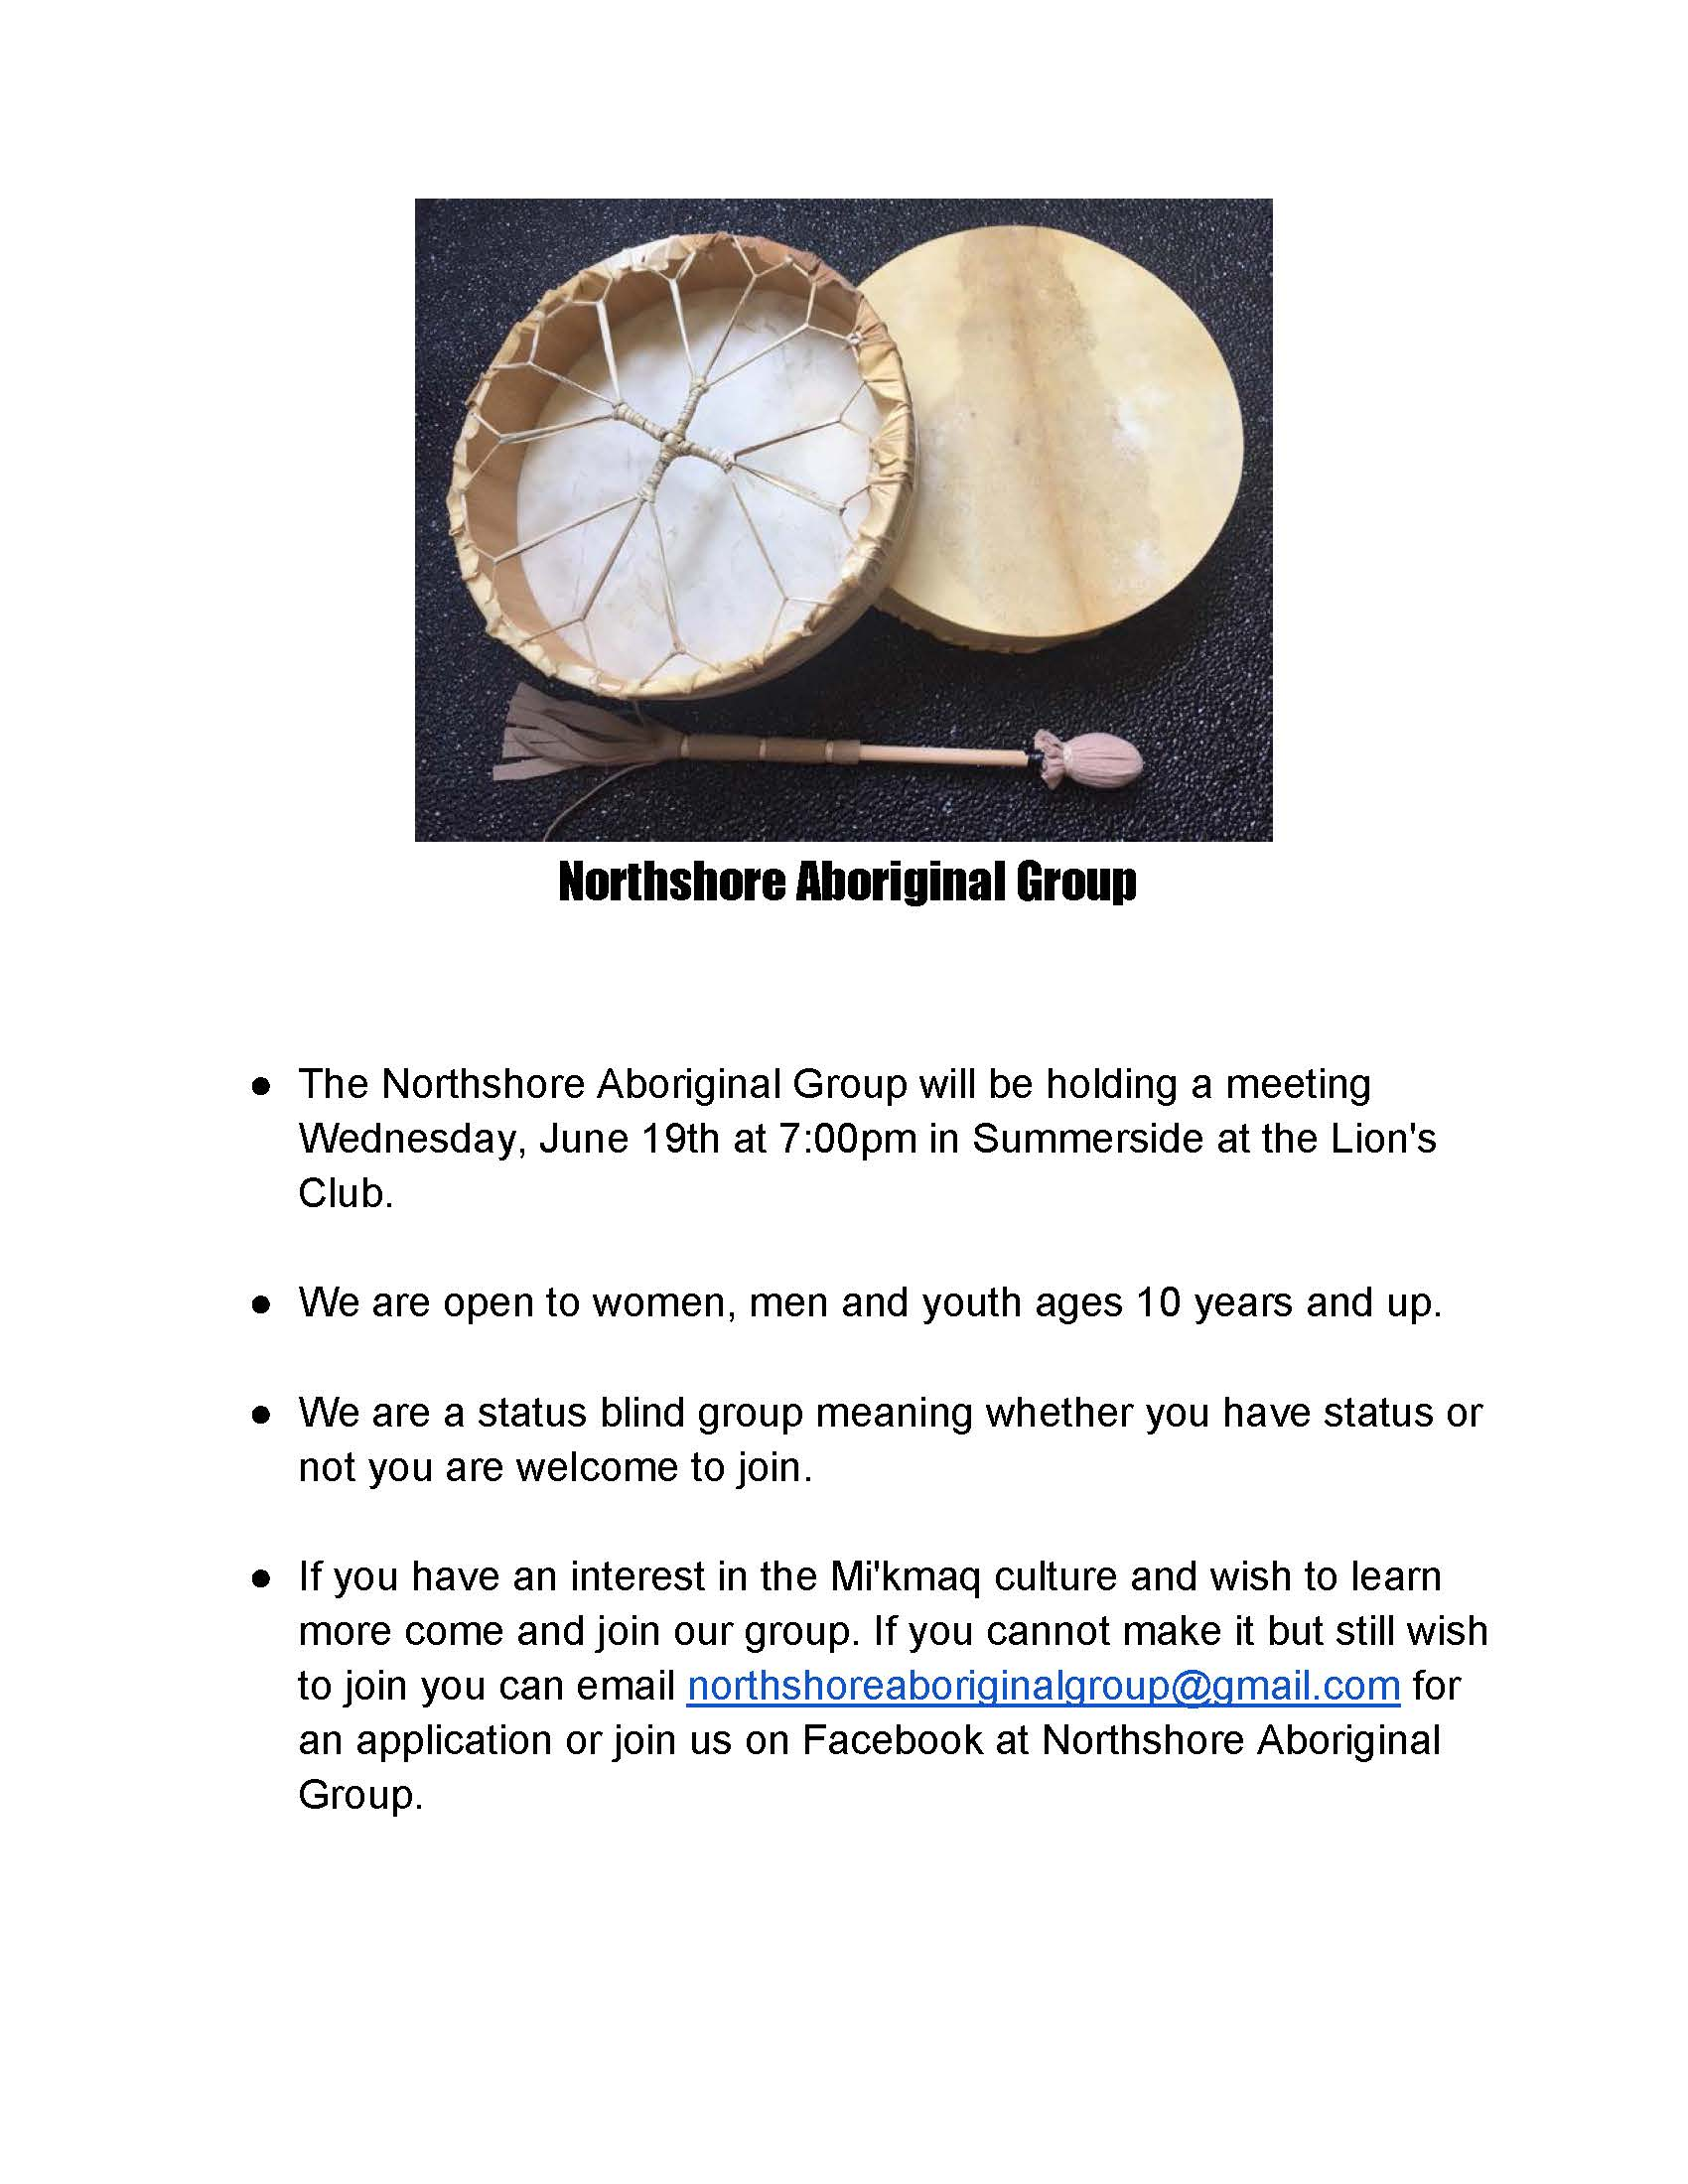 Northshore Aboriginal Group Meeting Poster